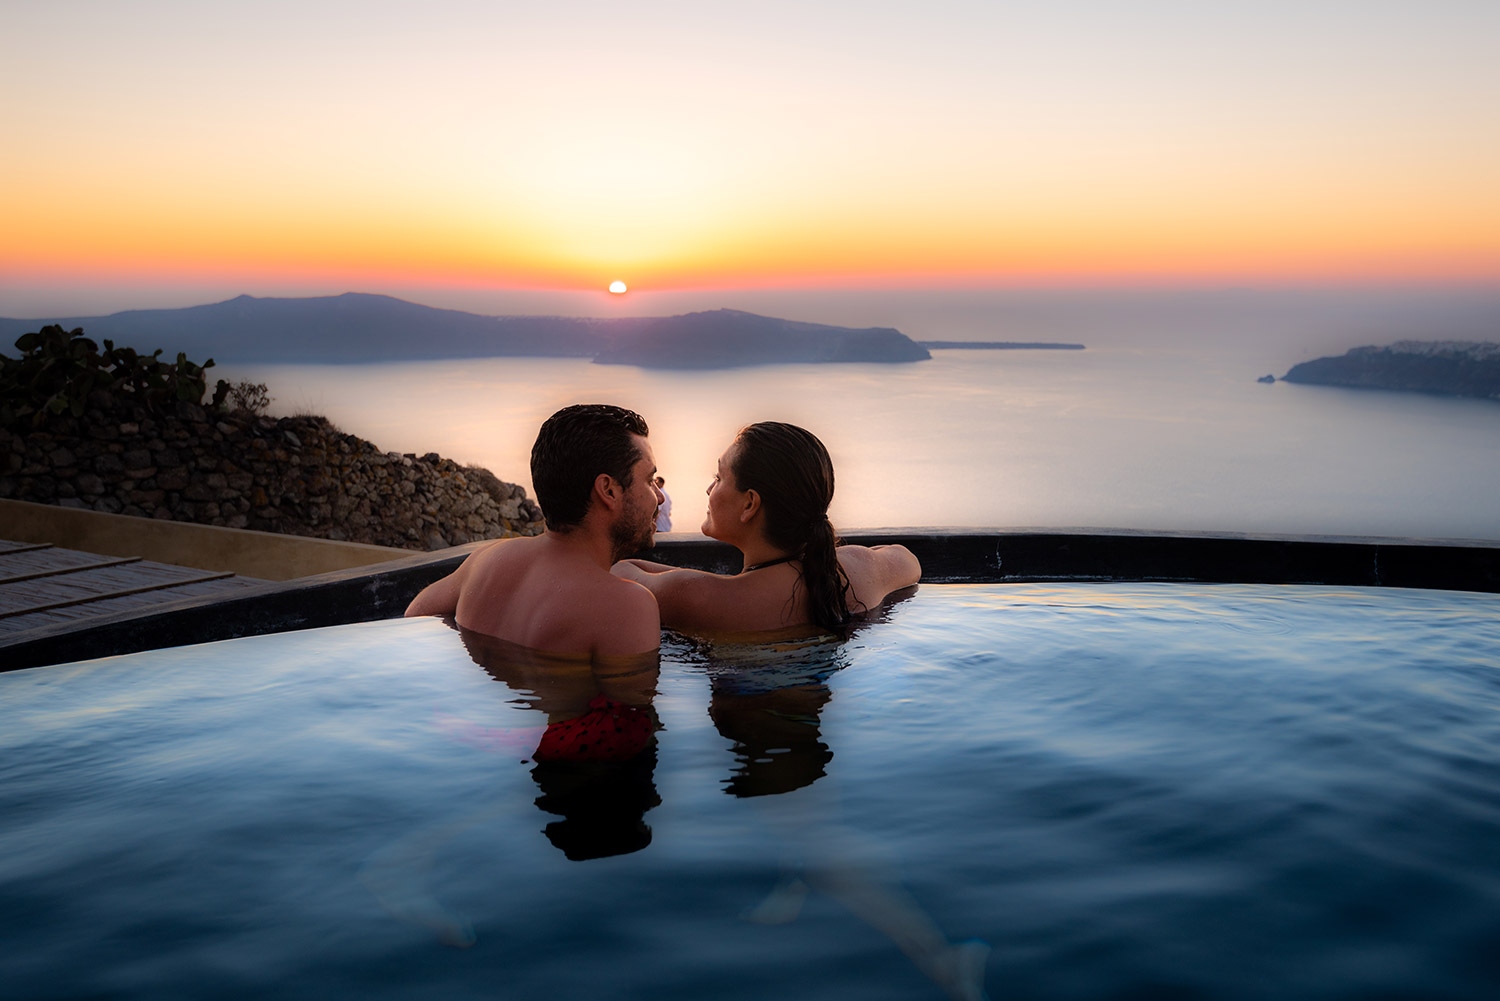 Luxury Hotels   Andronis Concept: A Santorini Luxury Hotel Focused on Wellness    Read our Review